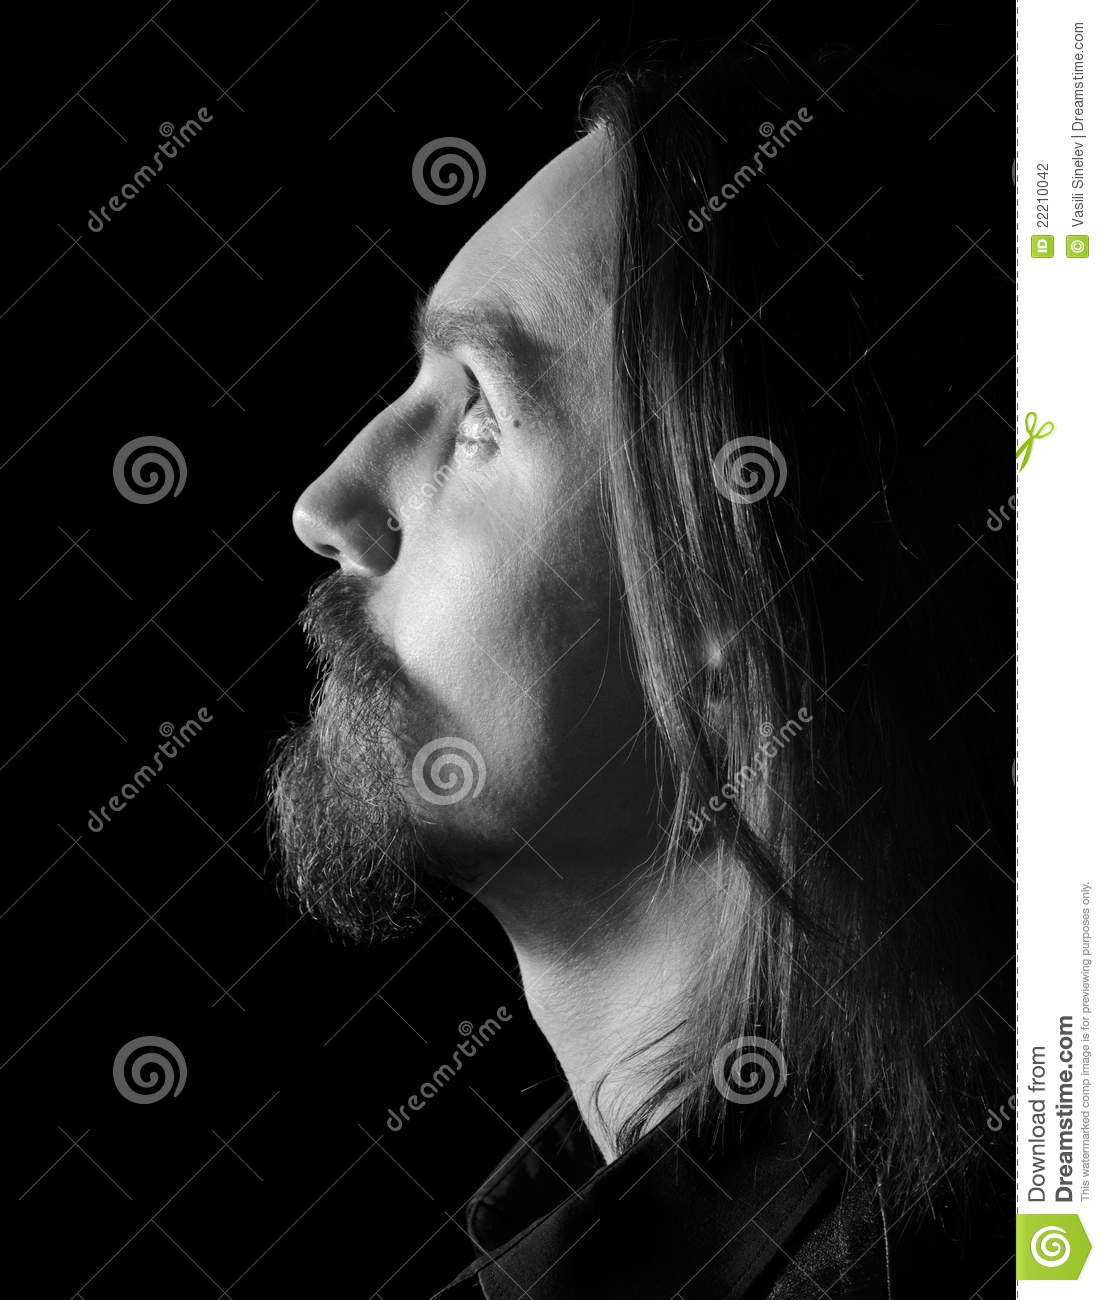 Male Profile Black And White Stock Photography Image